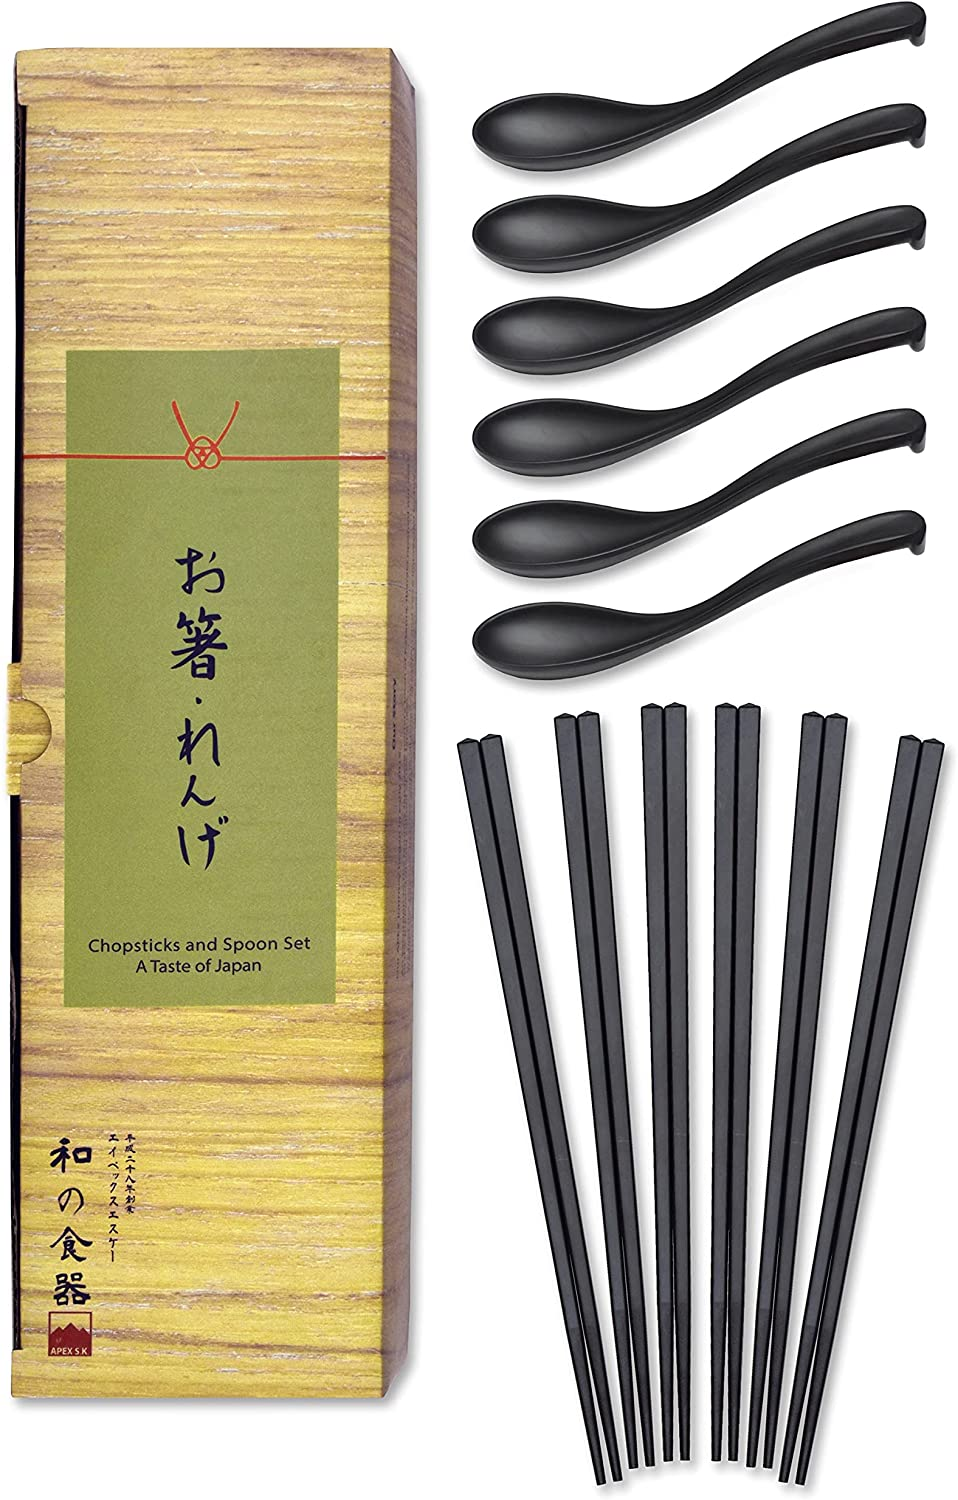 Set of 6 Chopsticks and Large Ladle Spoon Utensil Set (Melamine)